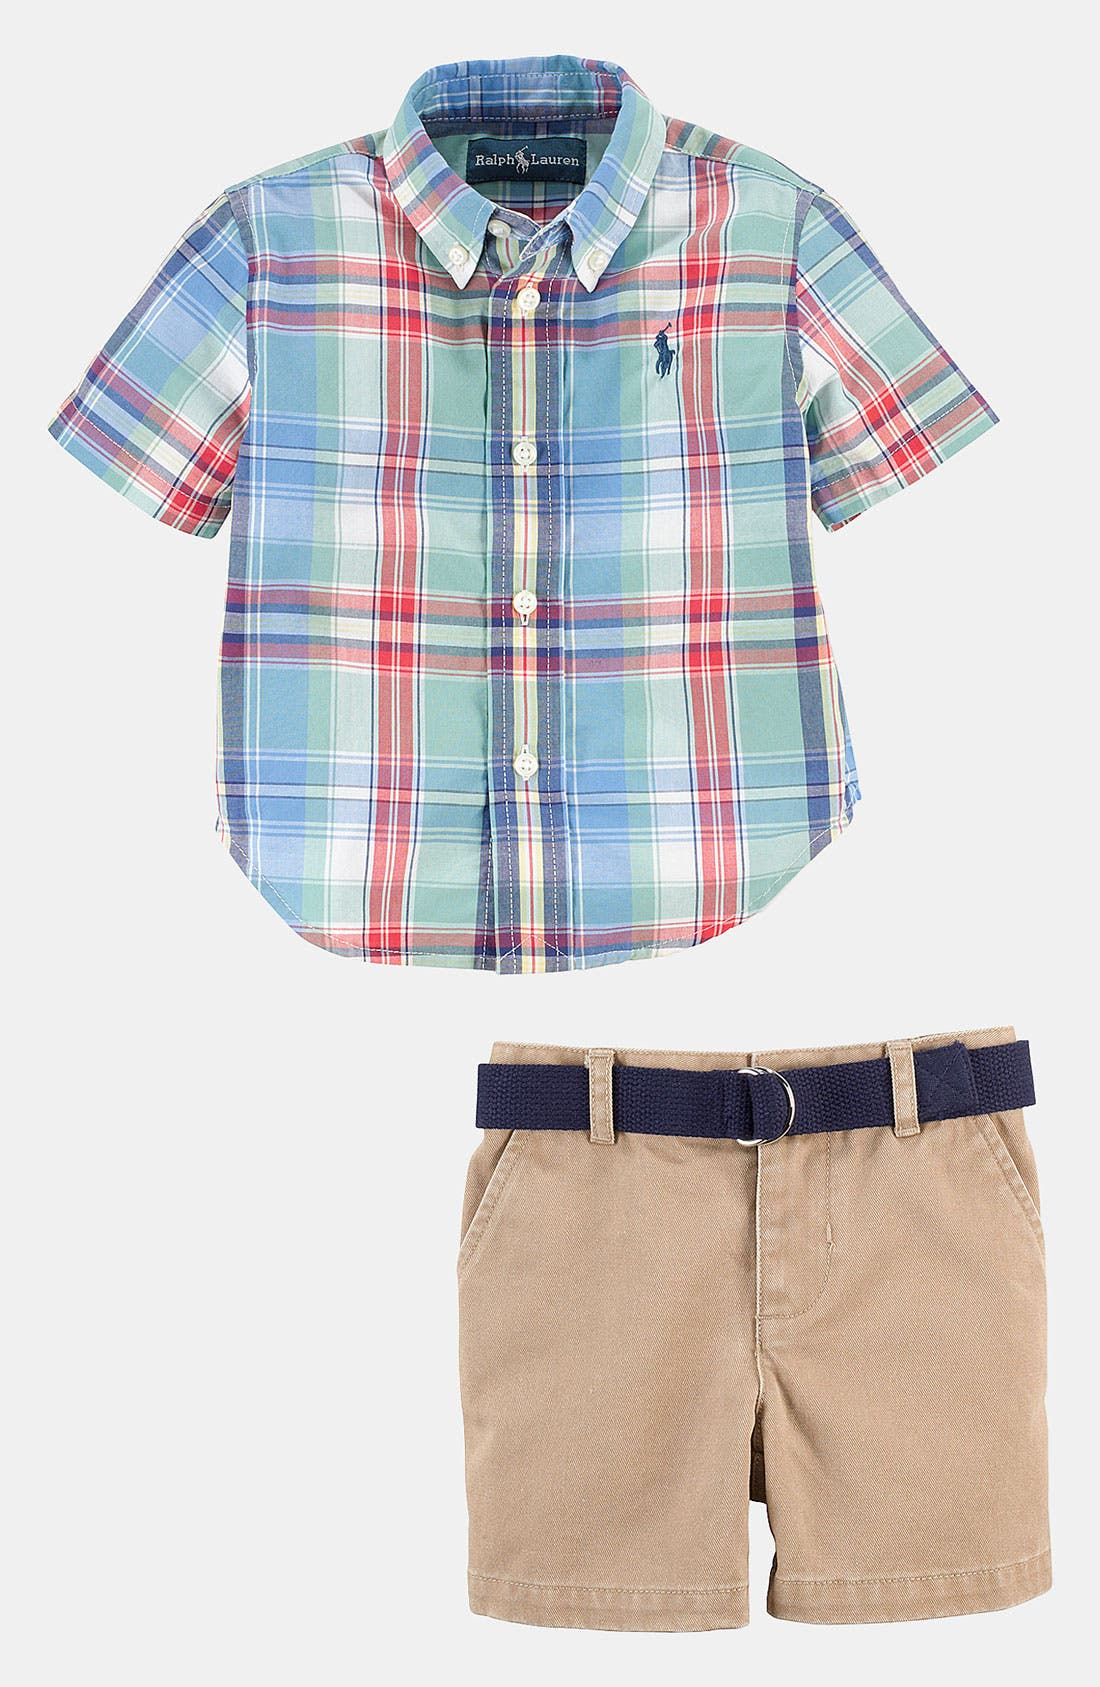 Alternate Image 1 Selected - Ralph Lauren Shirt & Shorts (Baby)